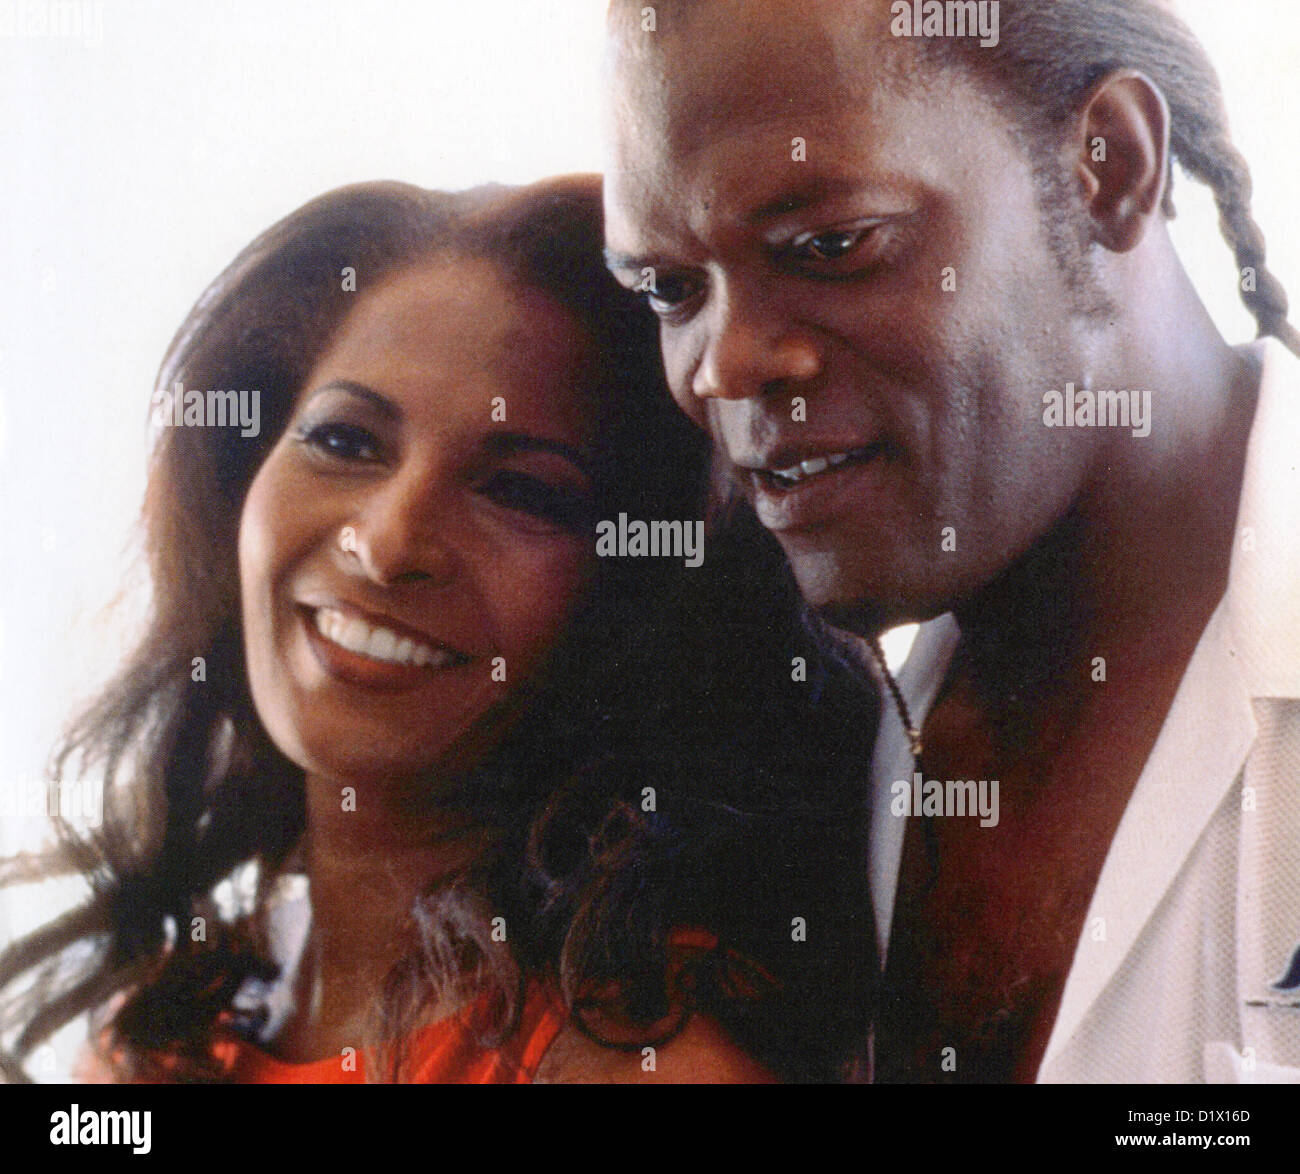 JACKIE BROWN 1997 Miramax film with Pam Grier and Samuel L. Jackson - Stock Image